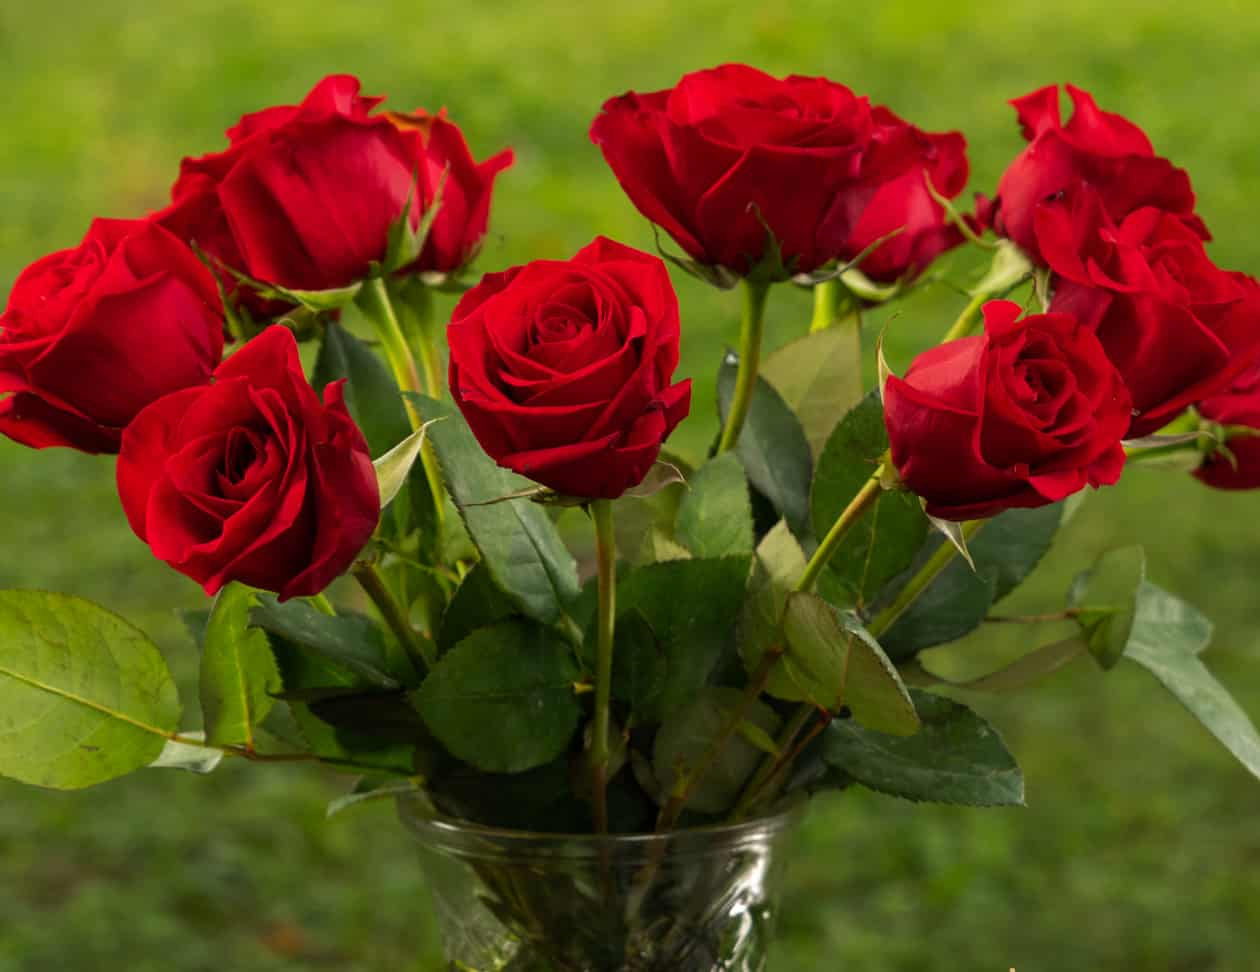 A dozen red roses in a glass vase